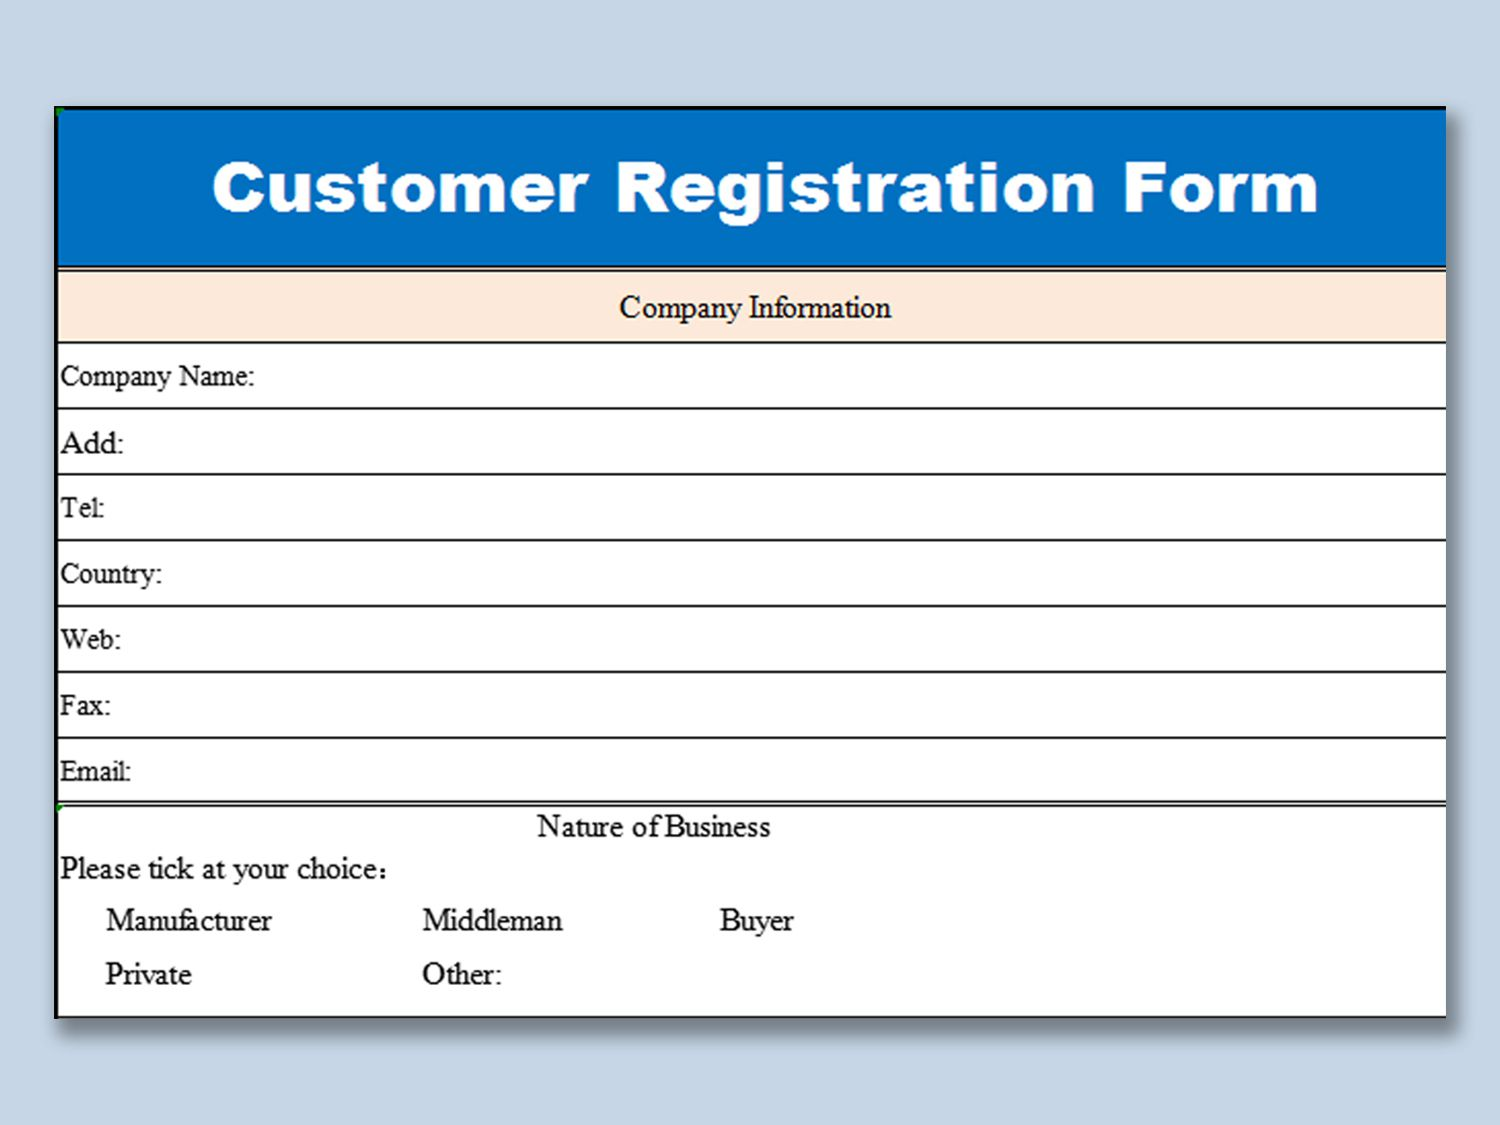 010 Excellent Registration Form Template Free Download Design  Bootstrap Student W3layout In PhpFull